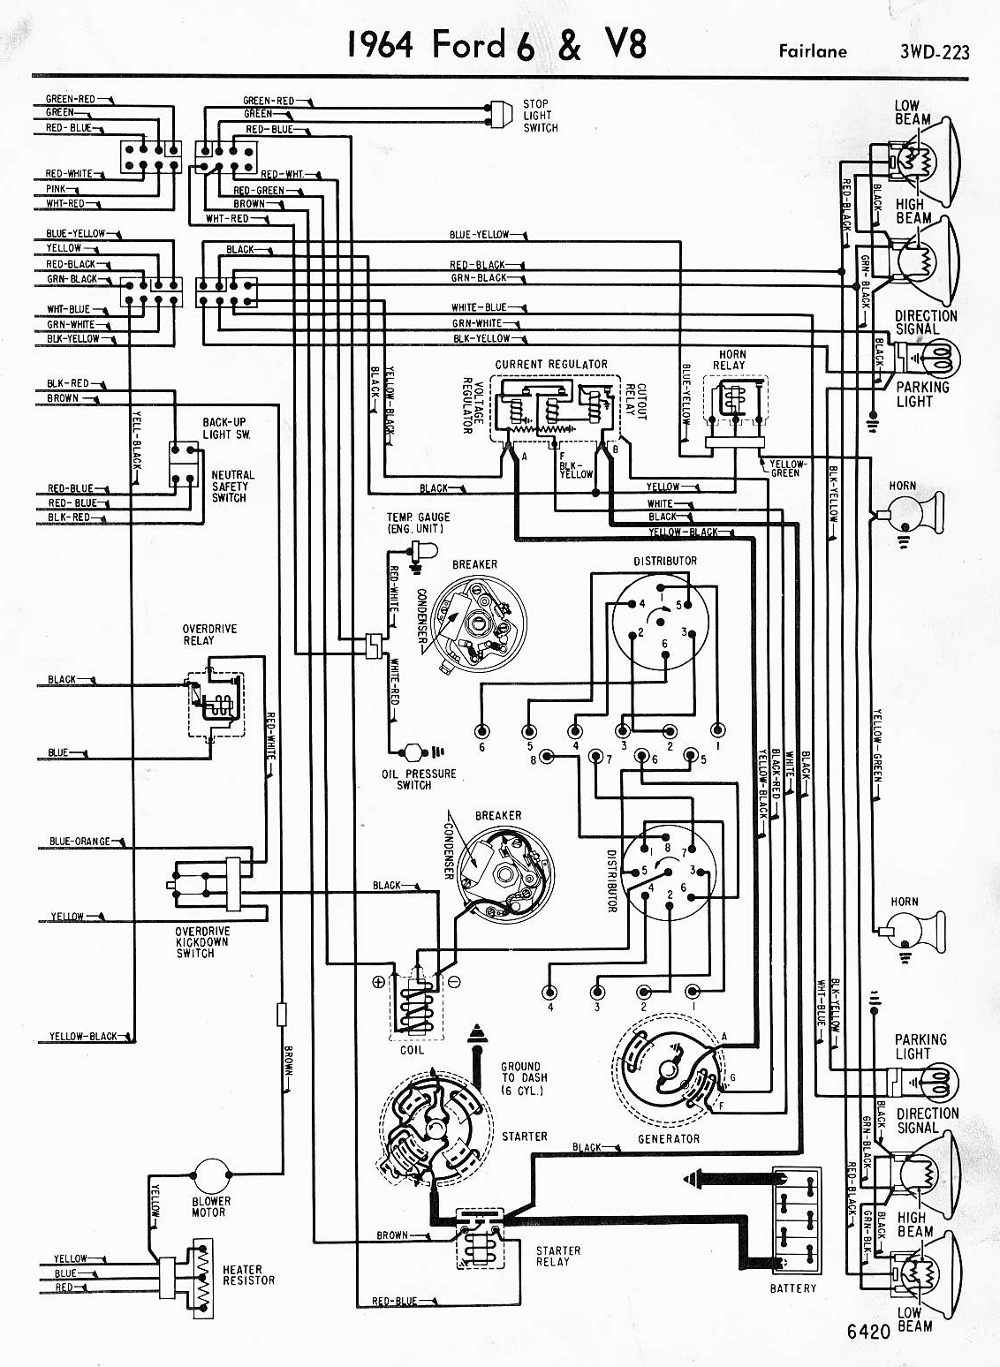 photo ford wiring diagram 1967 ford f250 wiring diagram wiring diagram1967 ford  f100 wiring schematic online wiring diagramf100 wir… | mustang engine,  diagram, wire  pinterest